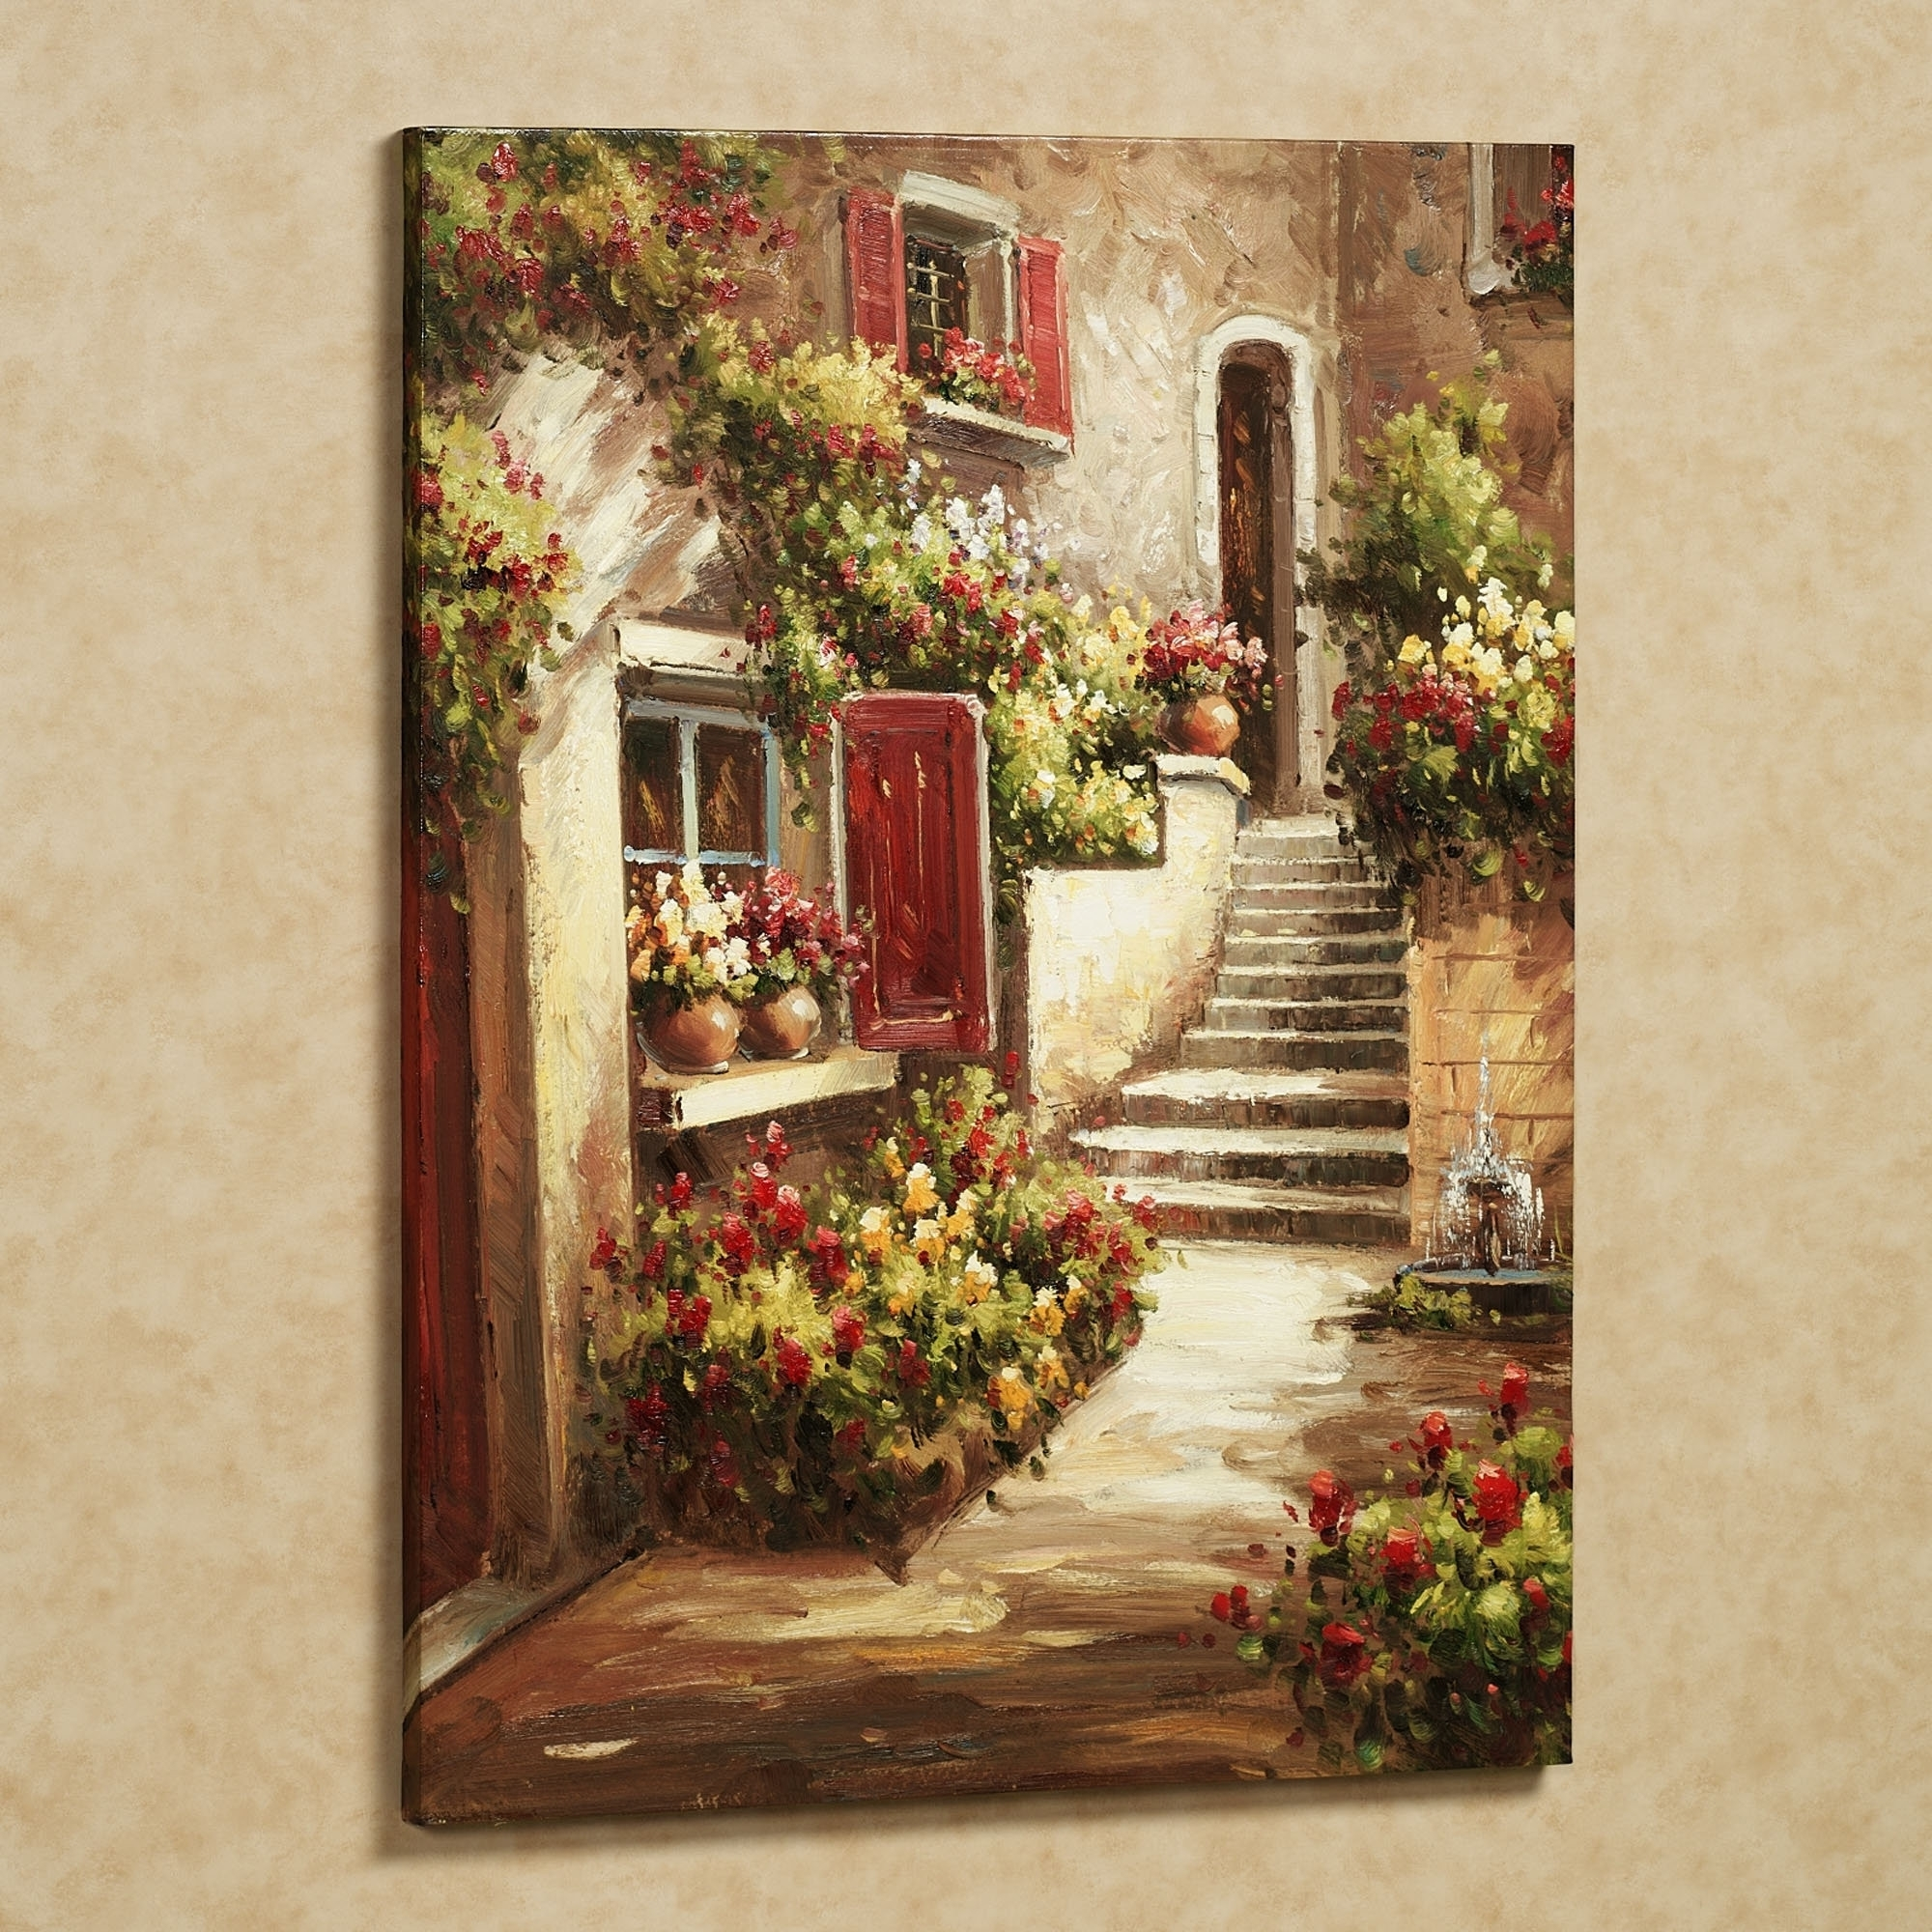 Country Wall Art Intended For Preferred Showing Photos Of French Country Wall Art Prints View 7 15 Fair (View 4 of 15)